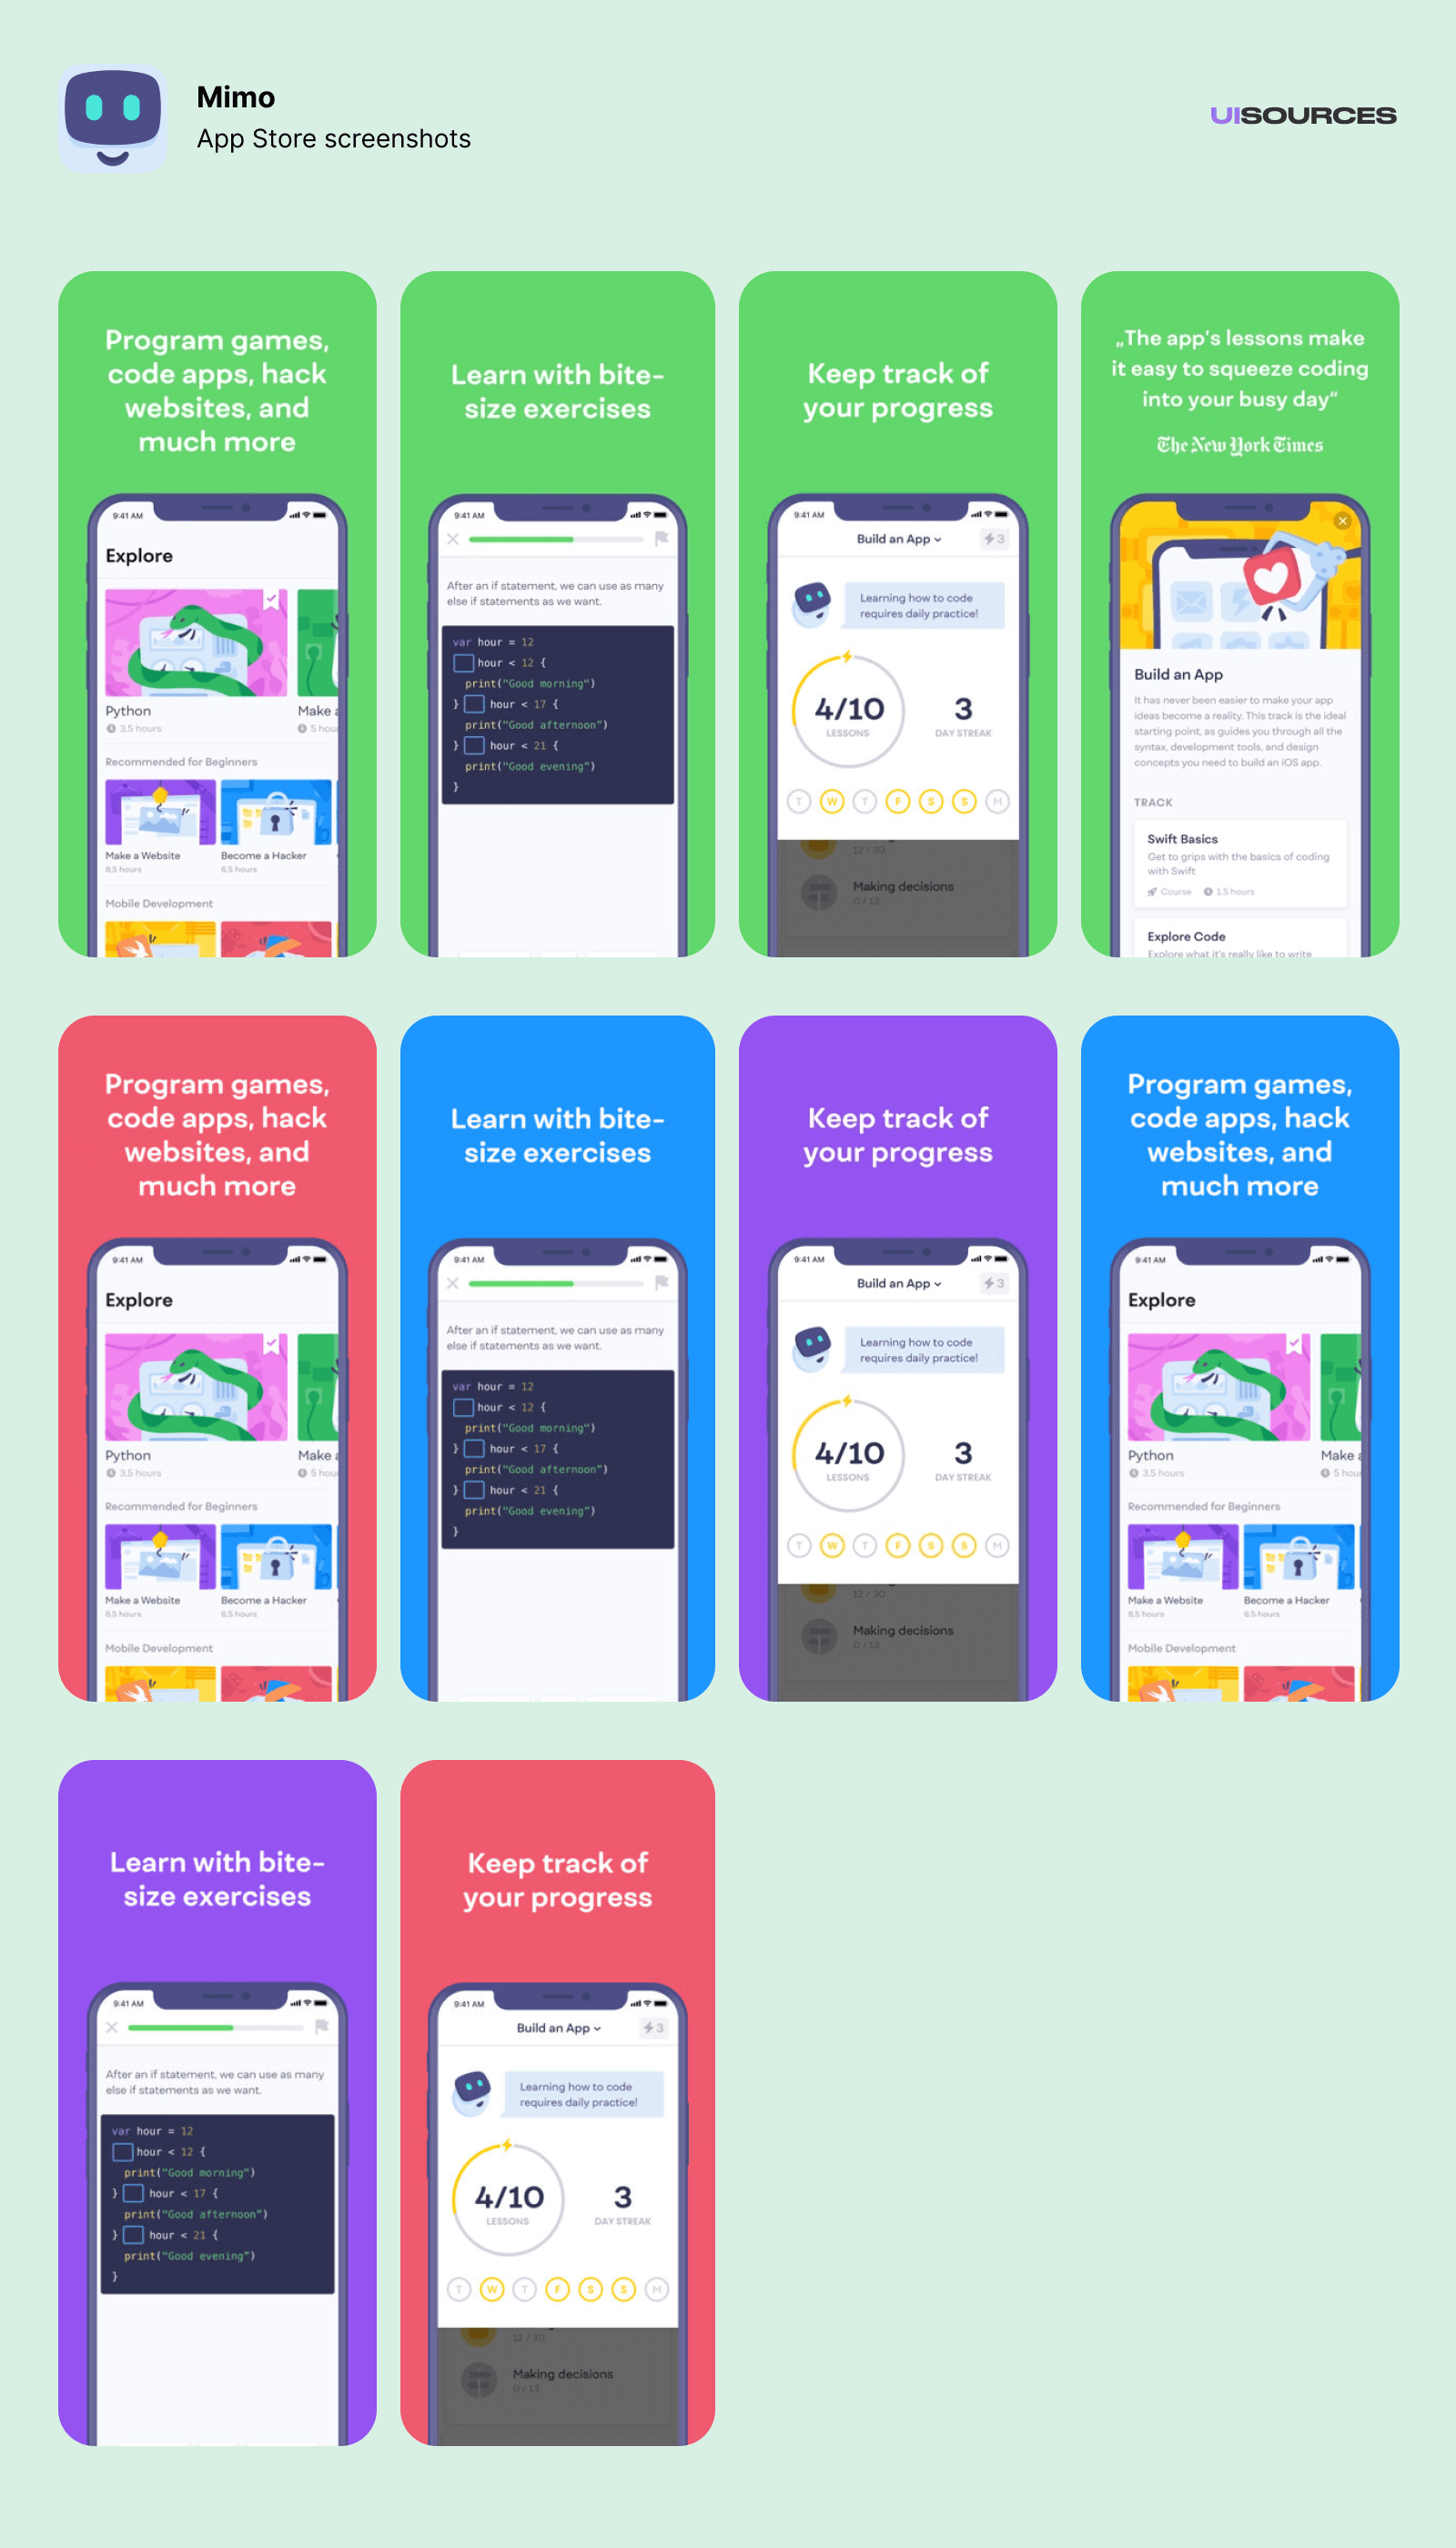 Mimo - Onboarding | UI Sources